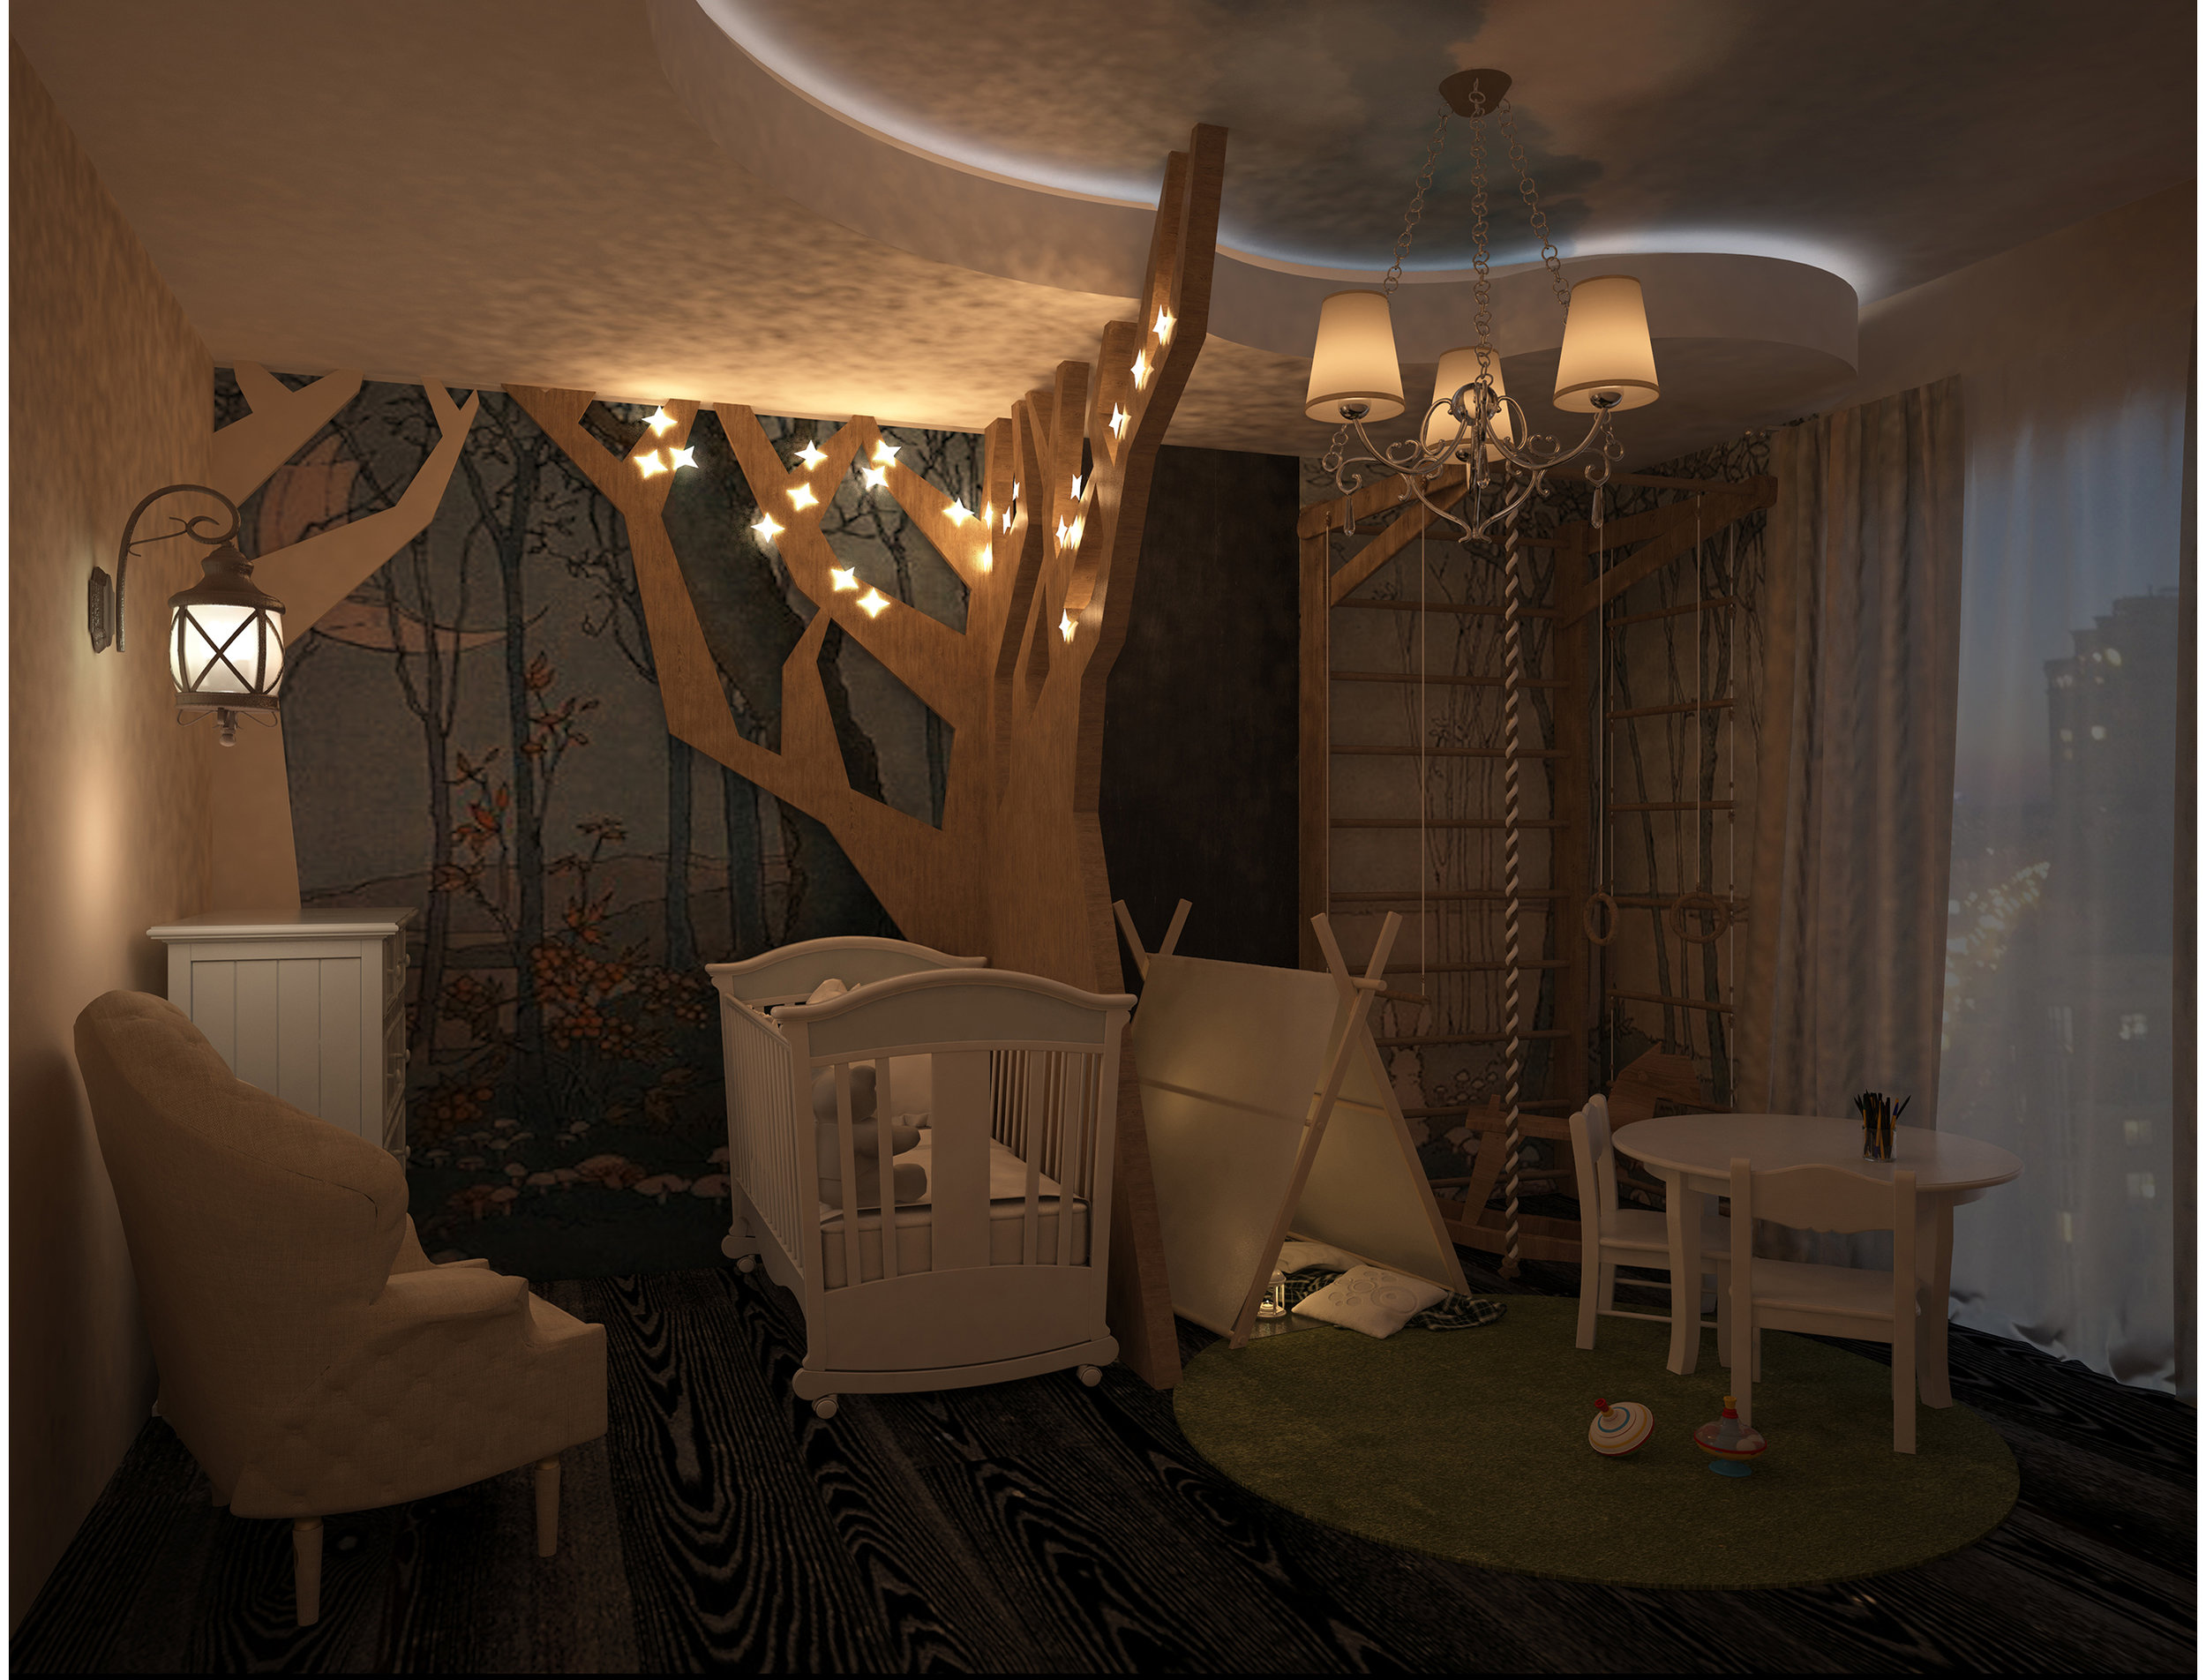 Magic forest nursery interior. Night view.